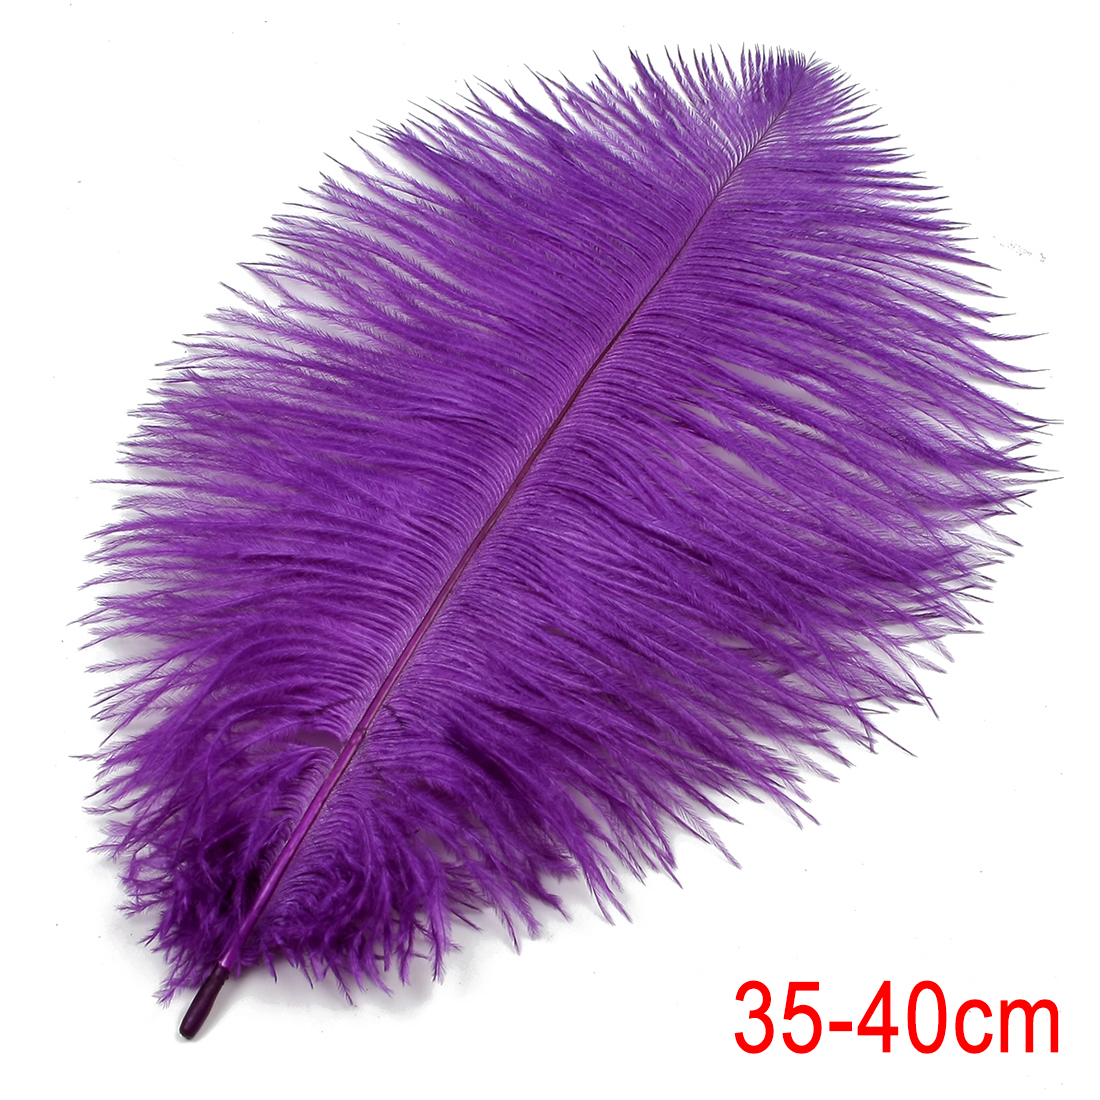 14-16inch / 35-40cm Ostrich Feather for Wedding Party Decoration Purple